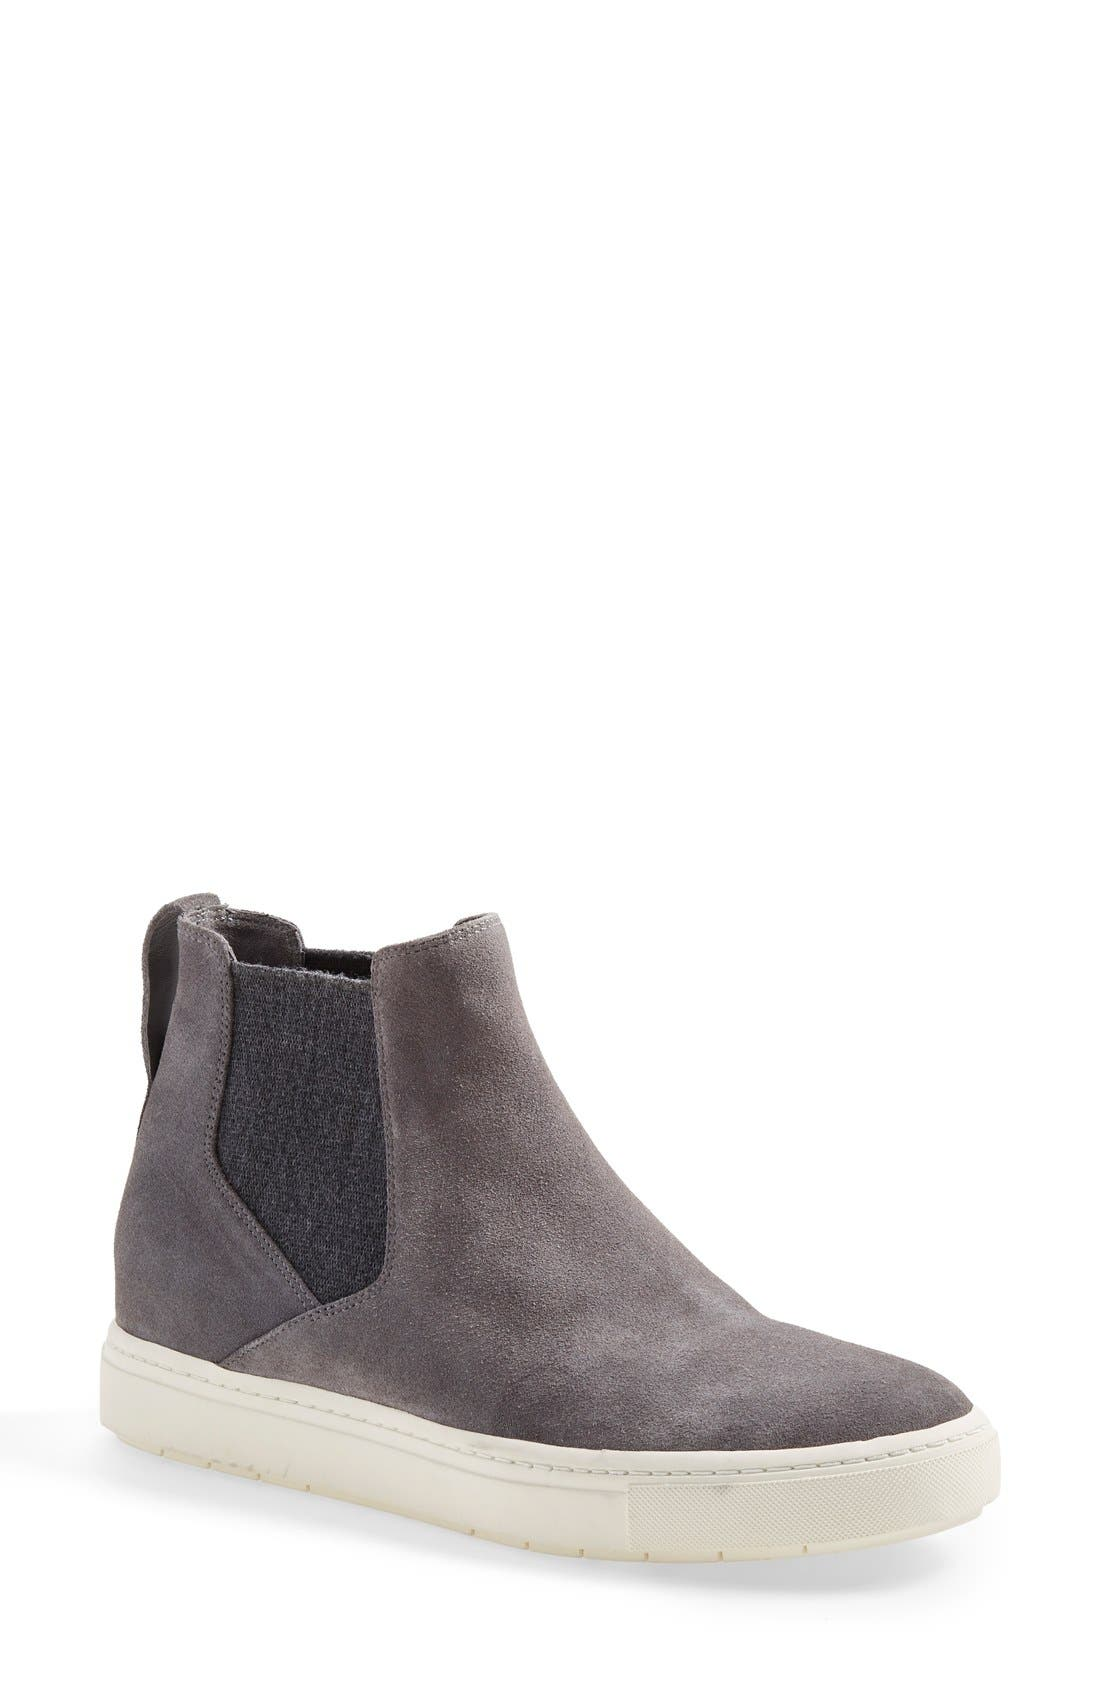 Newlyn High Top Sneaker,                             Main thumbnail 1, color,                             Ceramic Suede